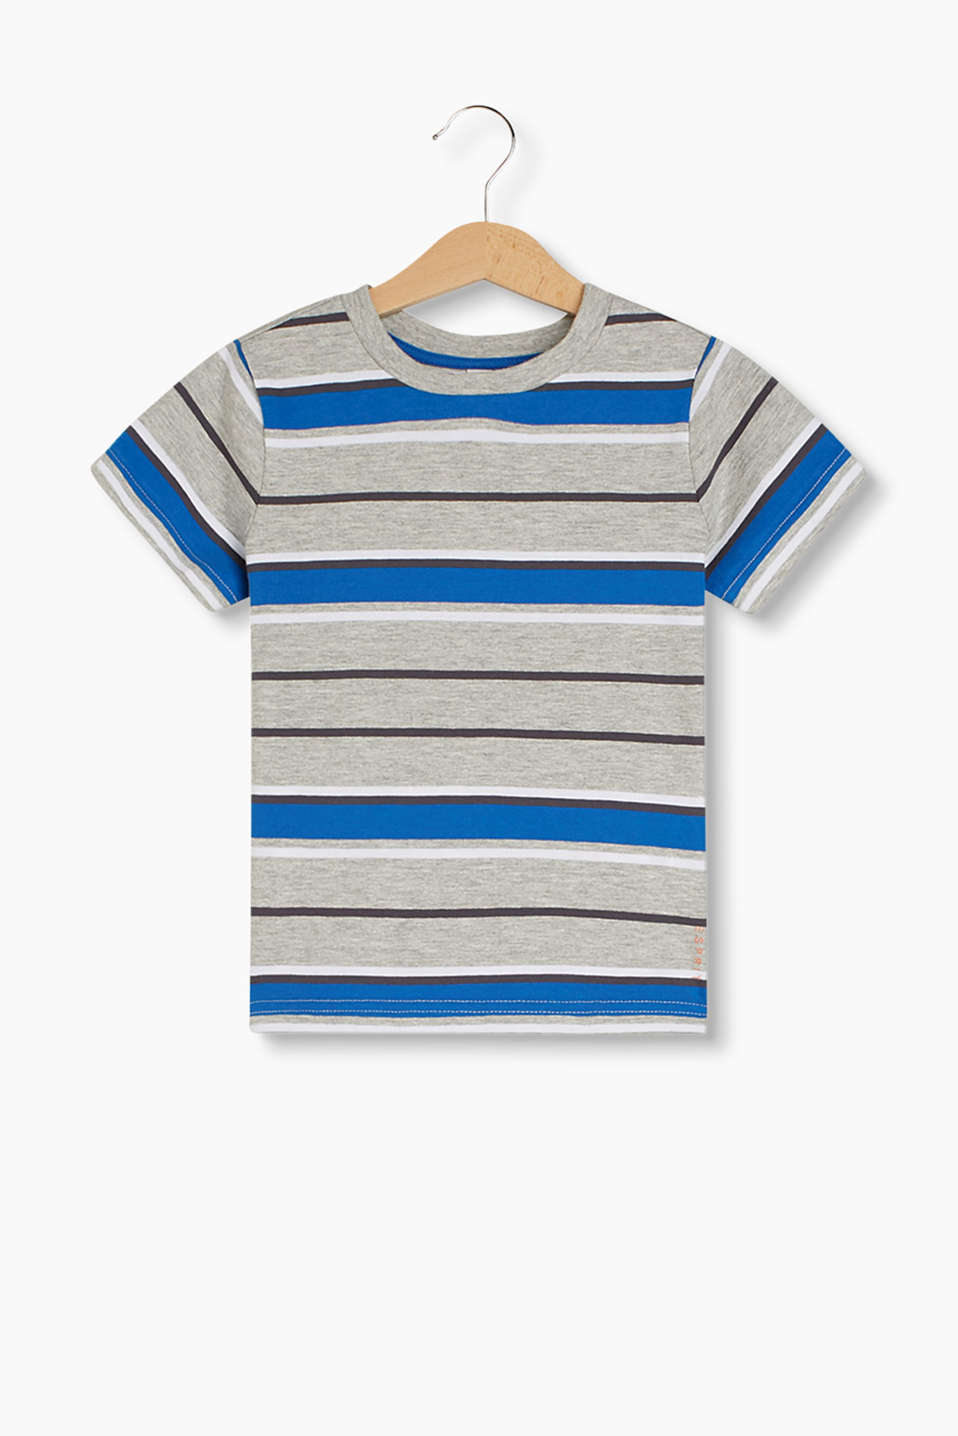 Soft T-shirt in a melange look with varying stripes